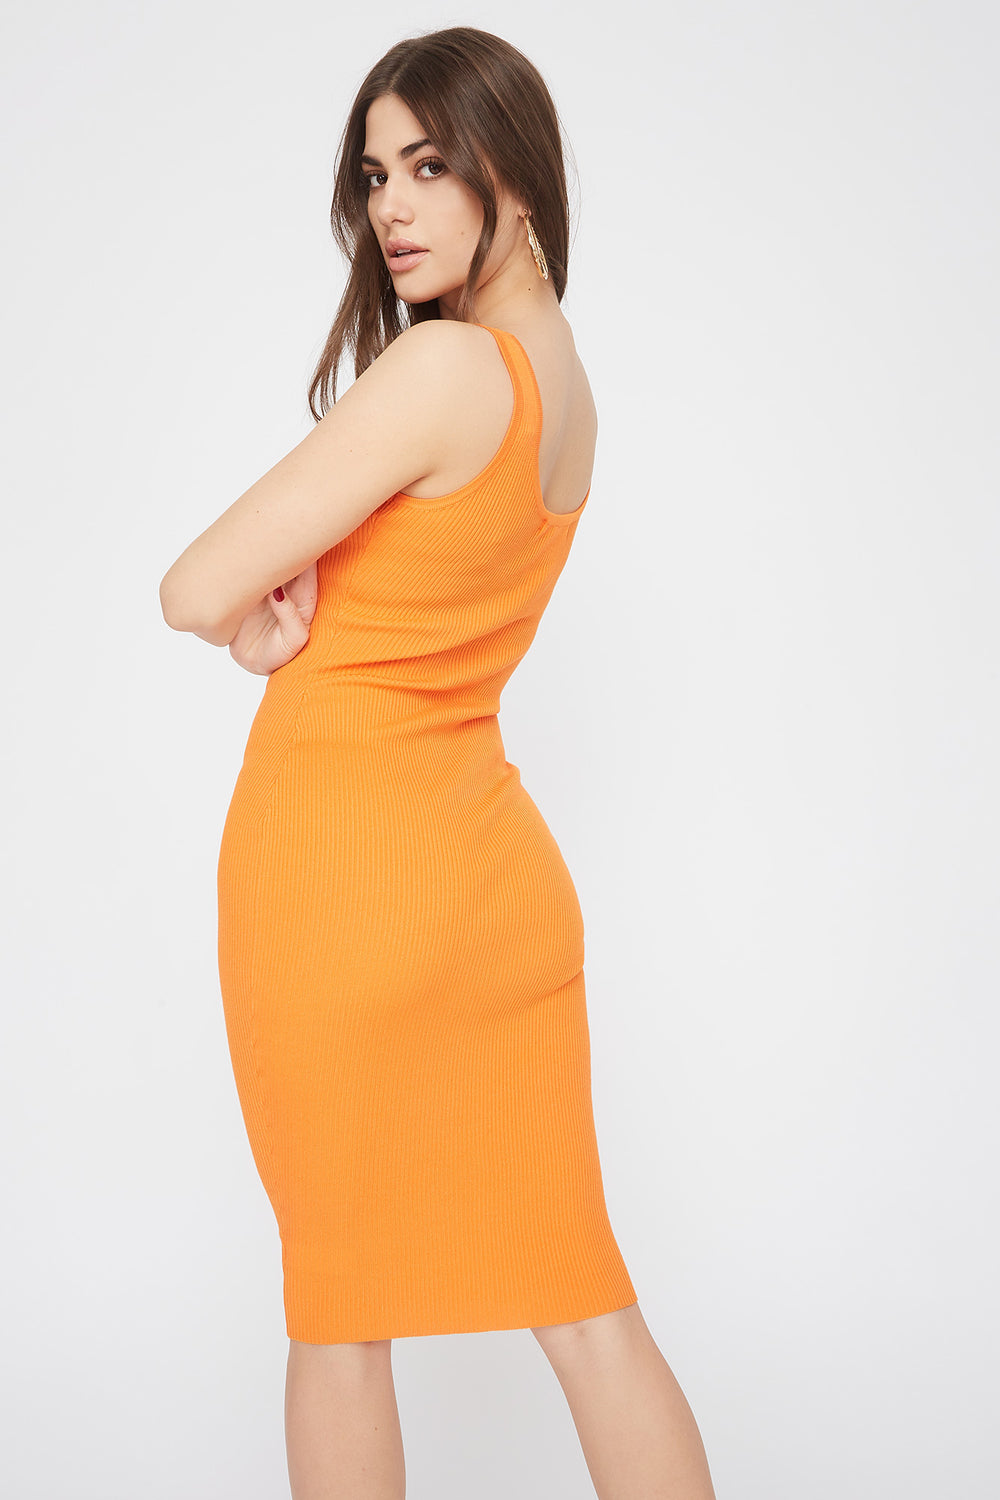 Robe midi côtelée à encolure arrondie Orange fluo